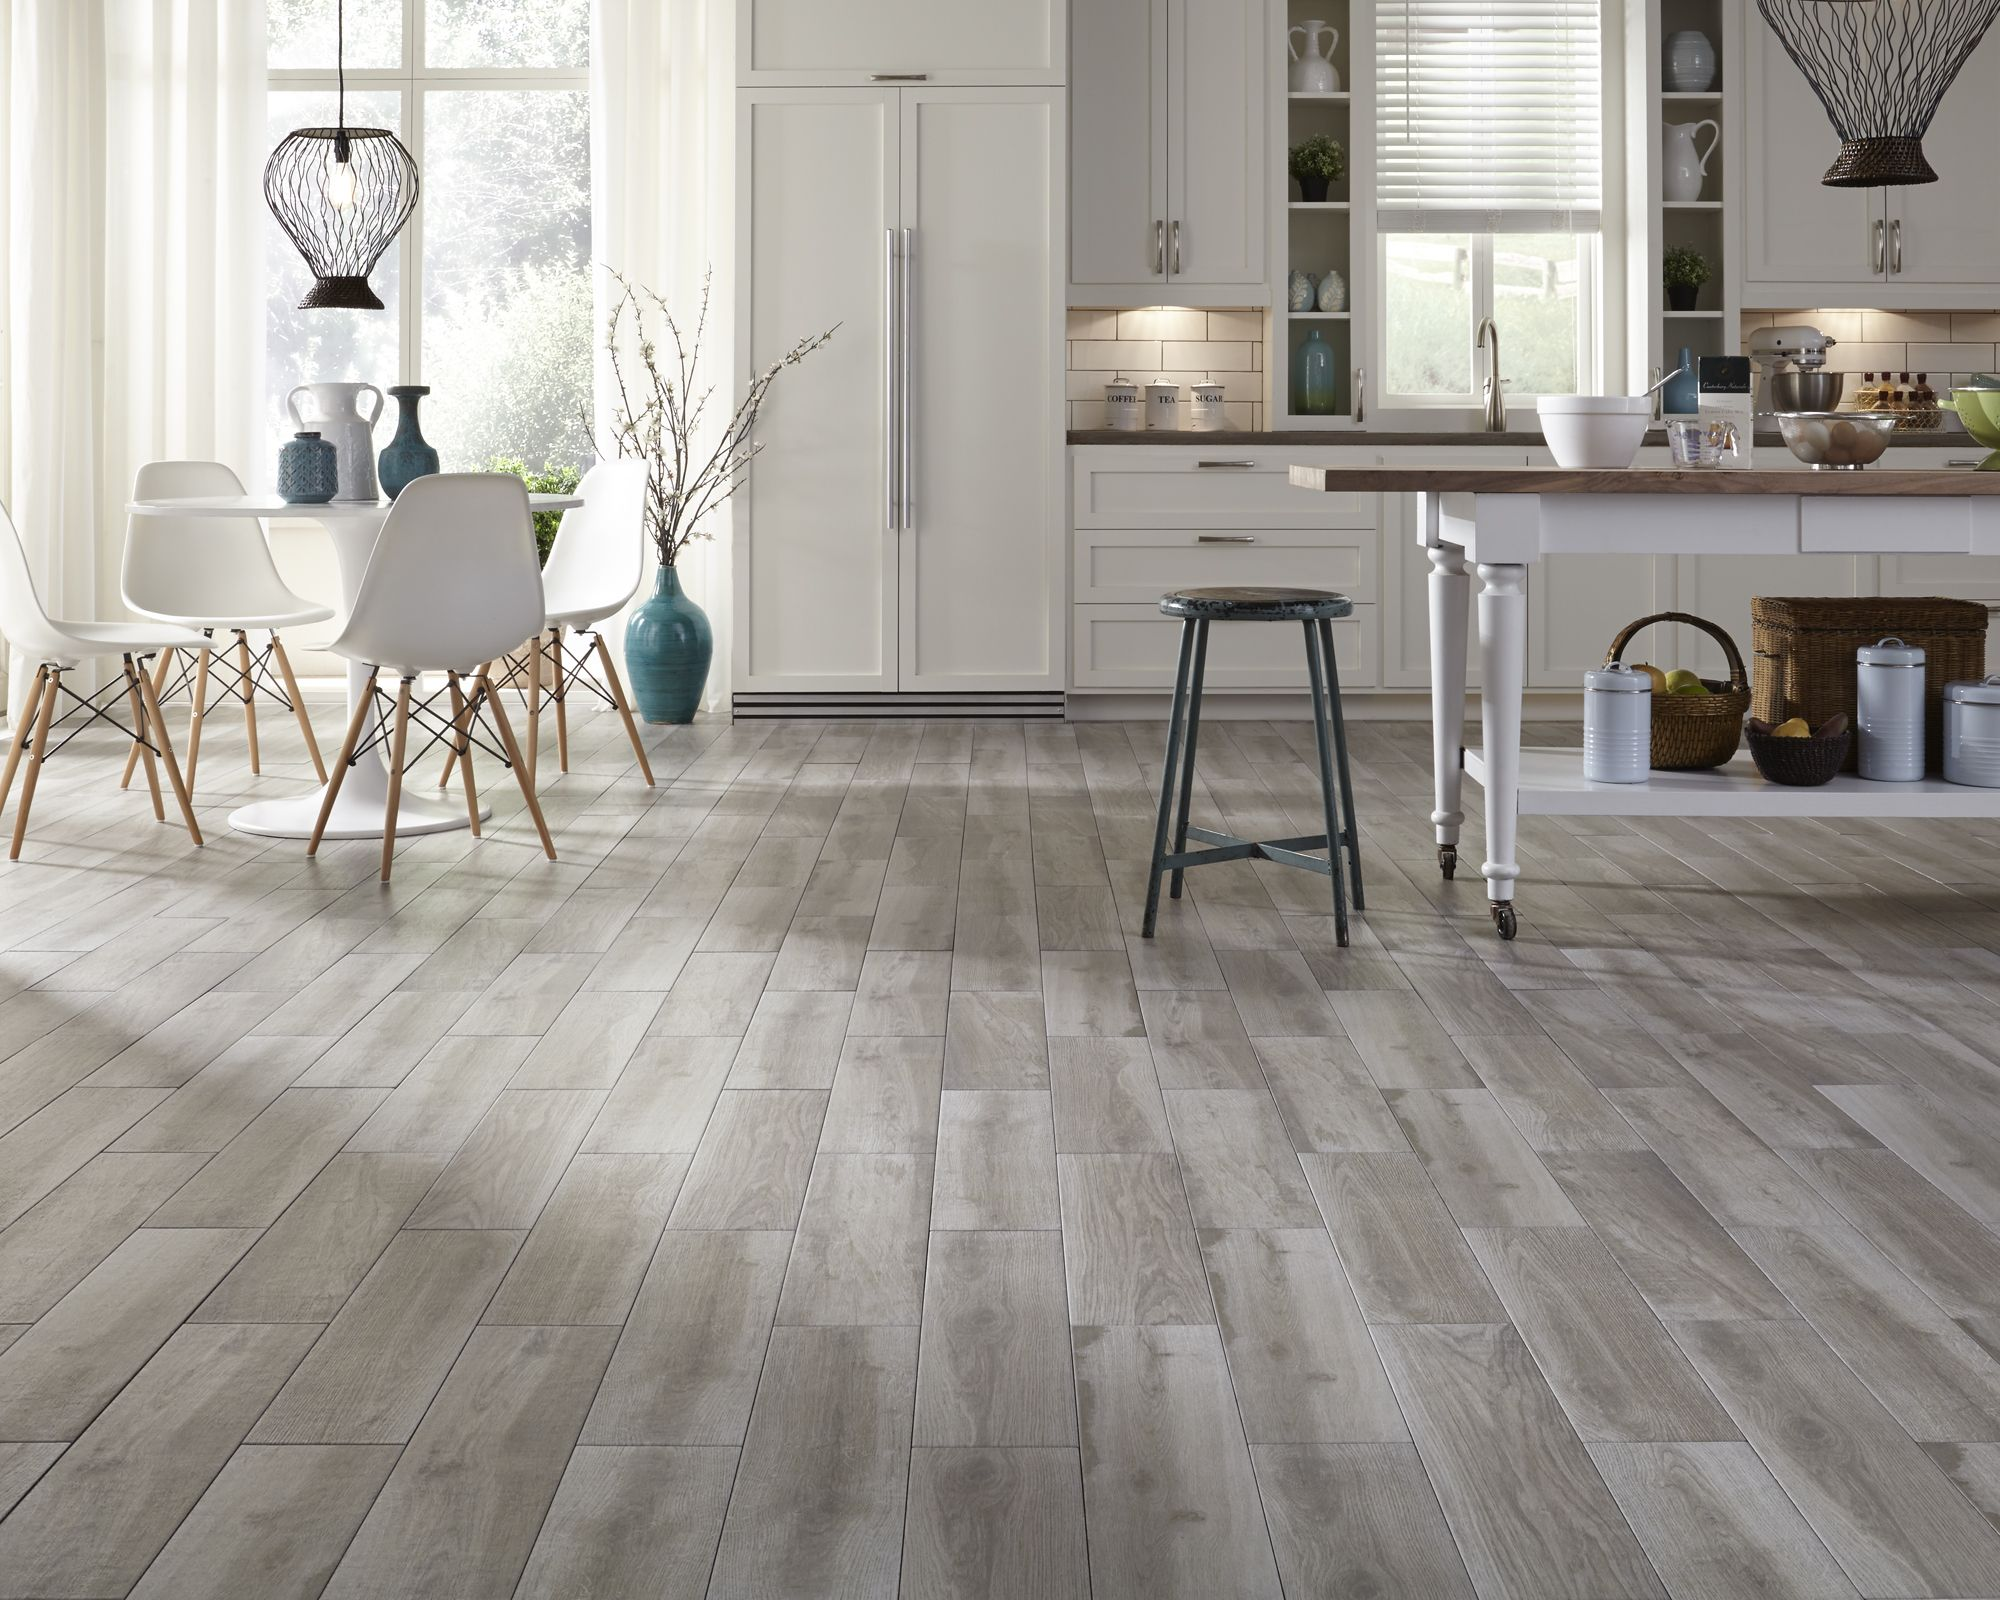 Best 25+ Grey Wood Floors Ideas On Pinterest | Grey Flooring, Wood Floor  Colors And Flooring Ideas Part 52